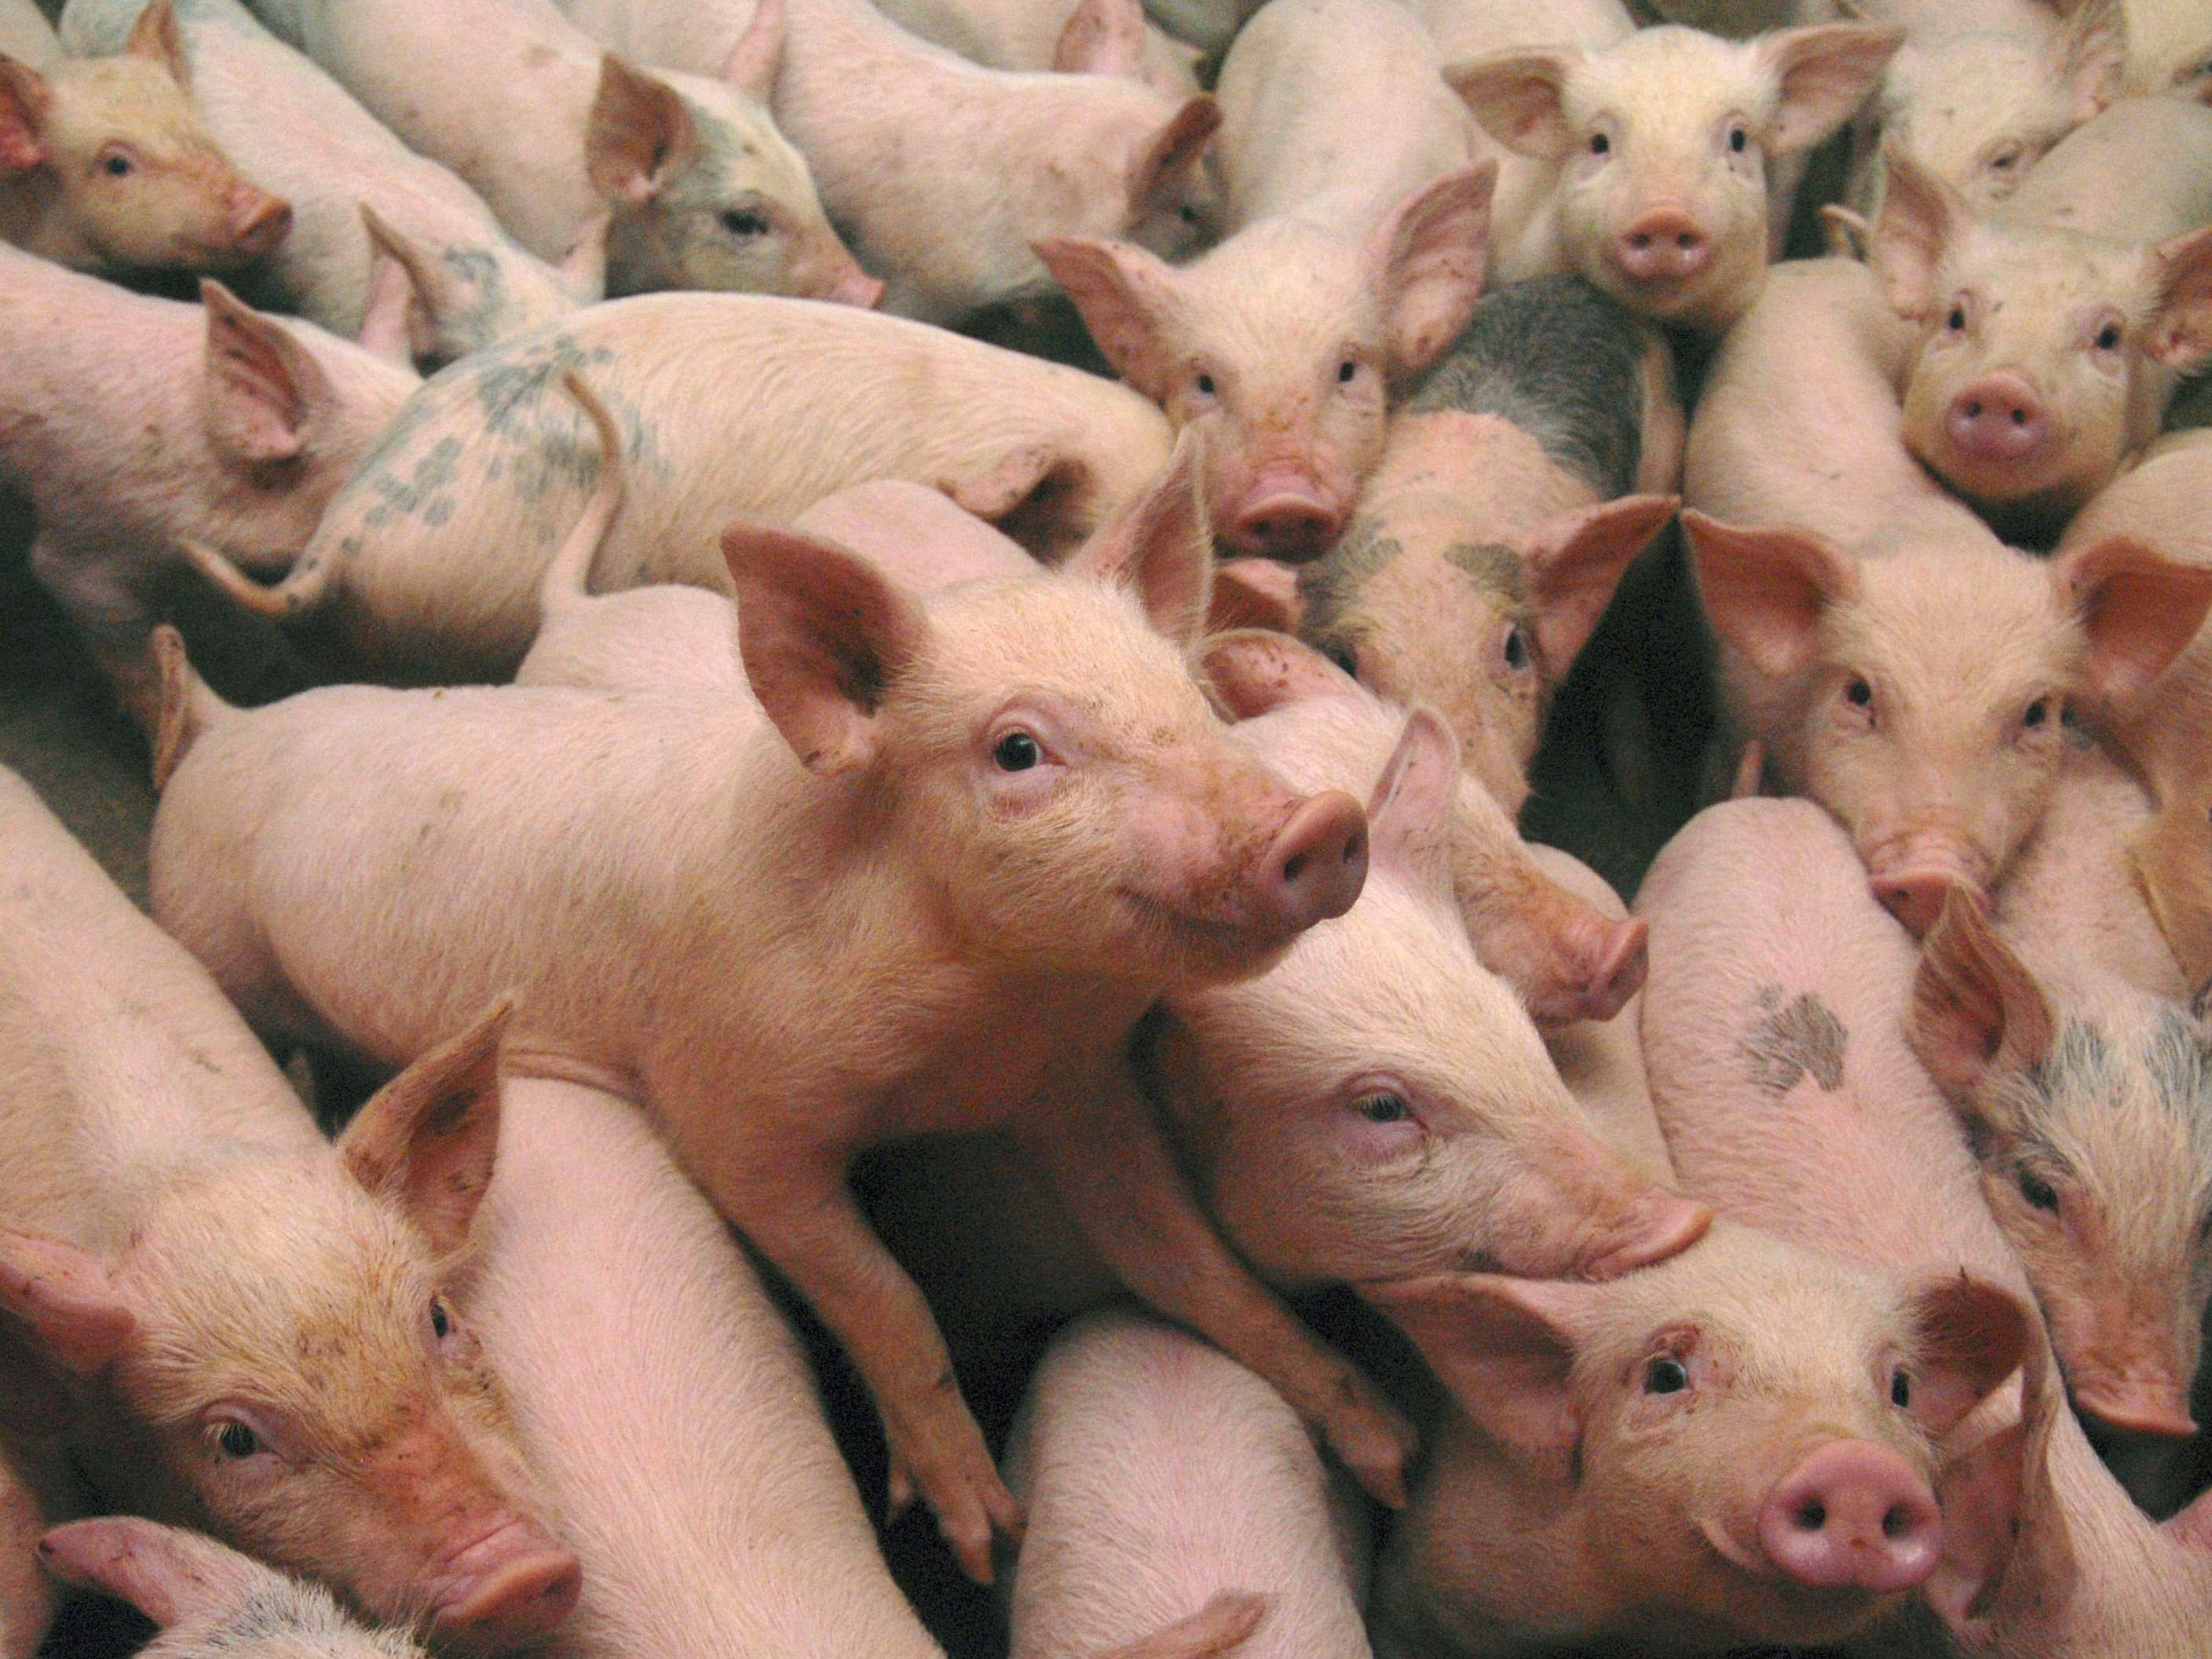 Res: 2817x2113, Pigs images HD wallpaper and background photos